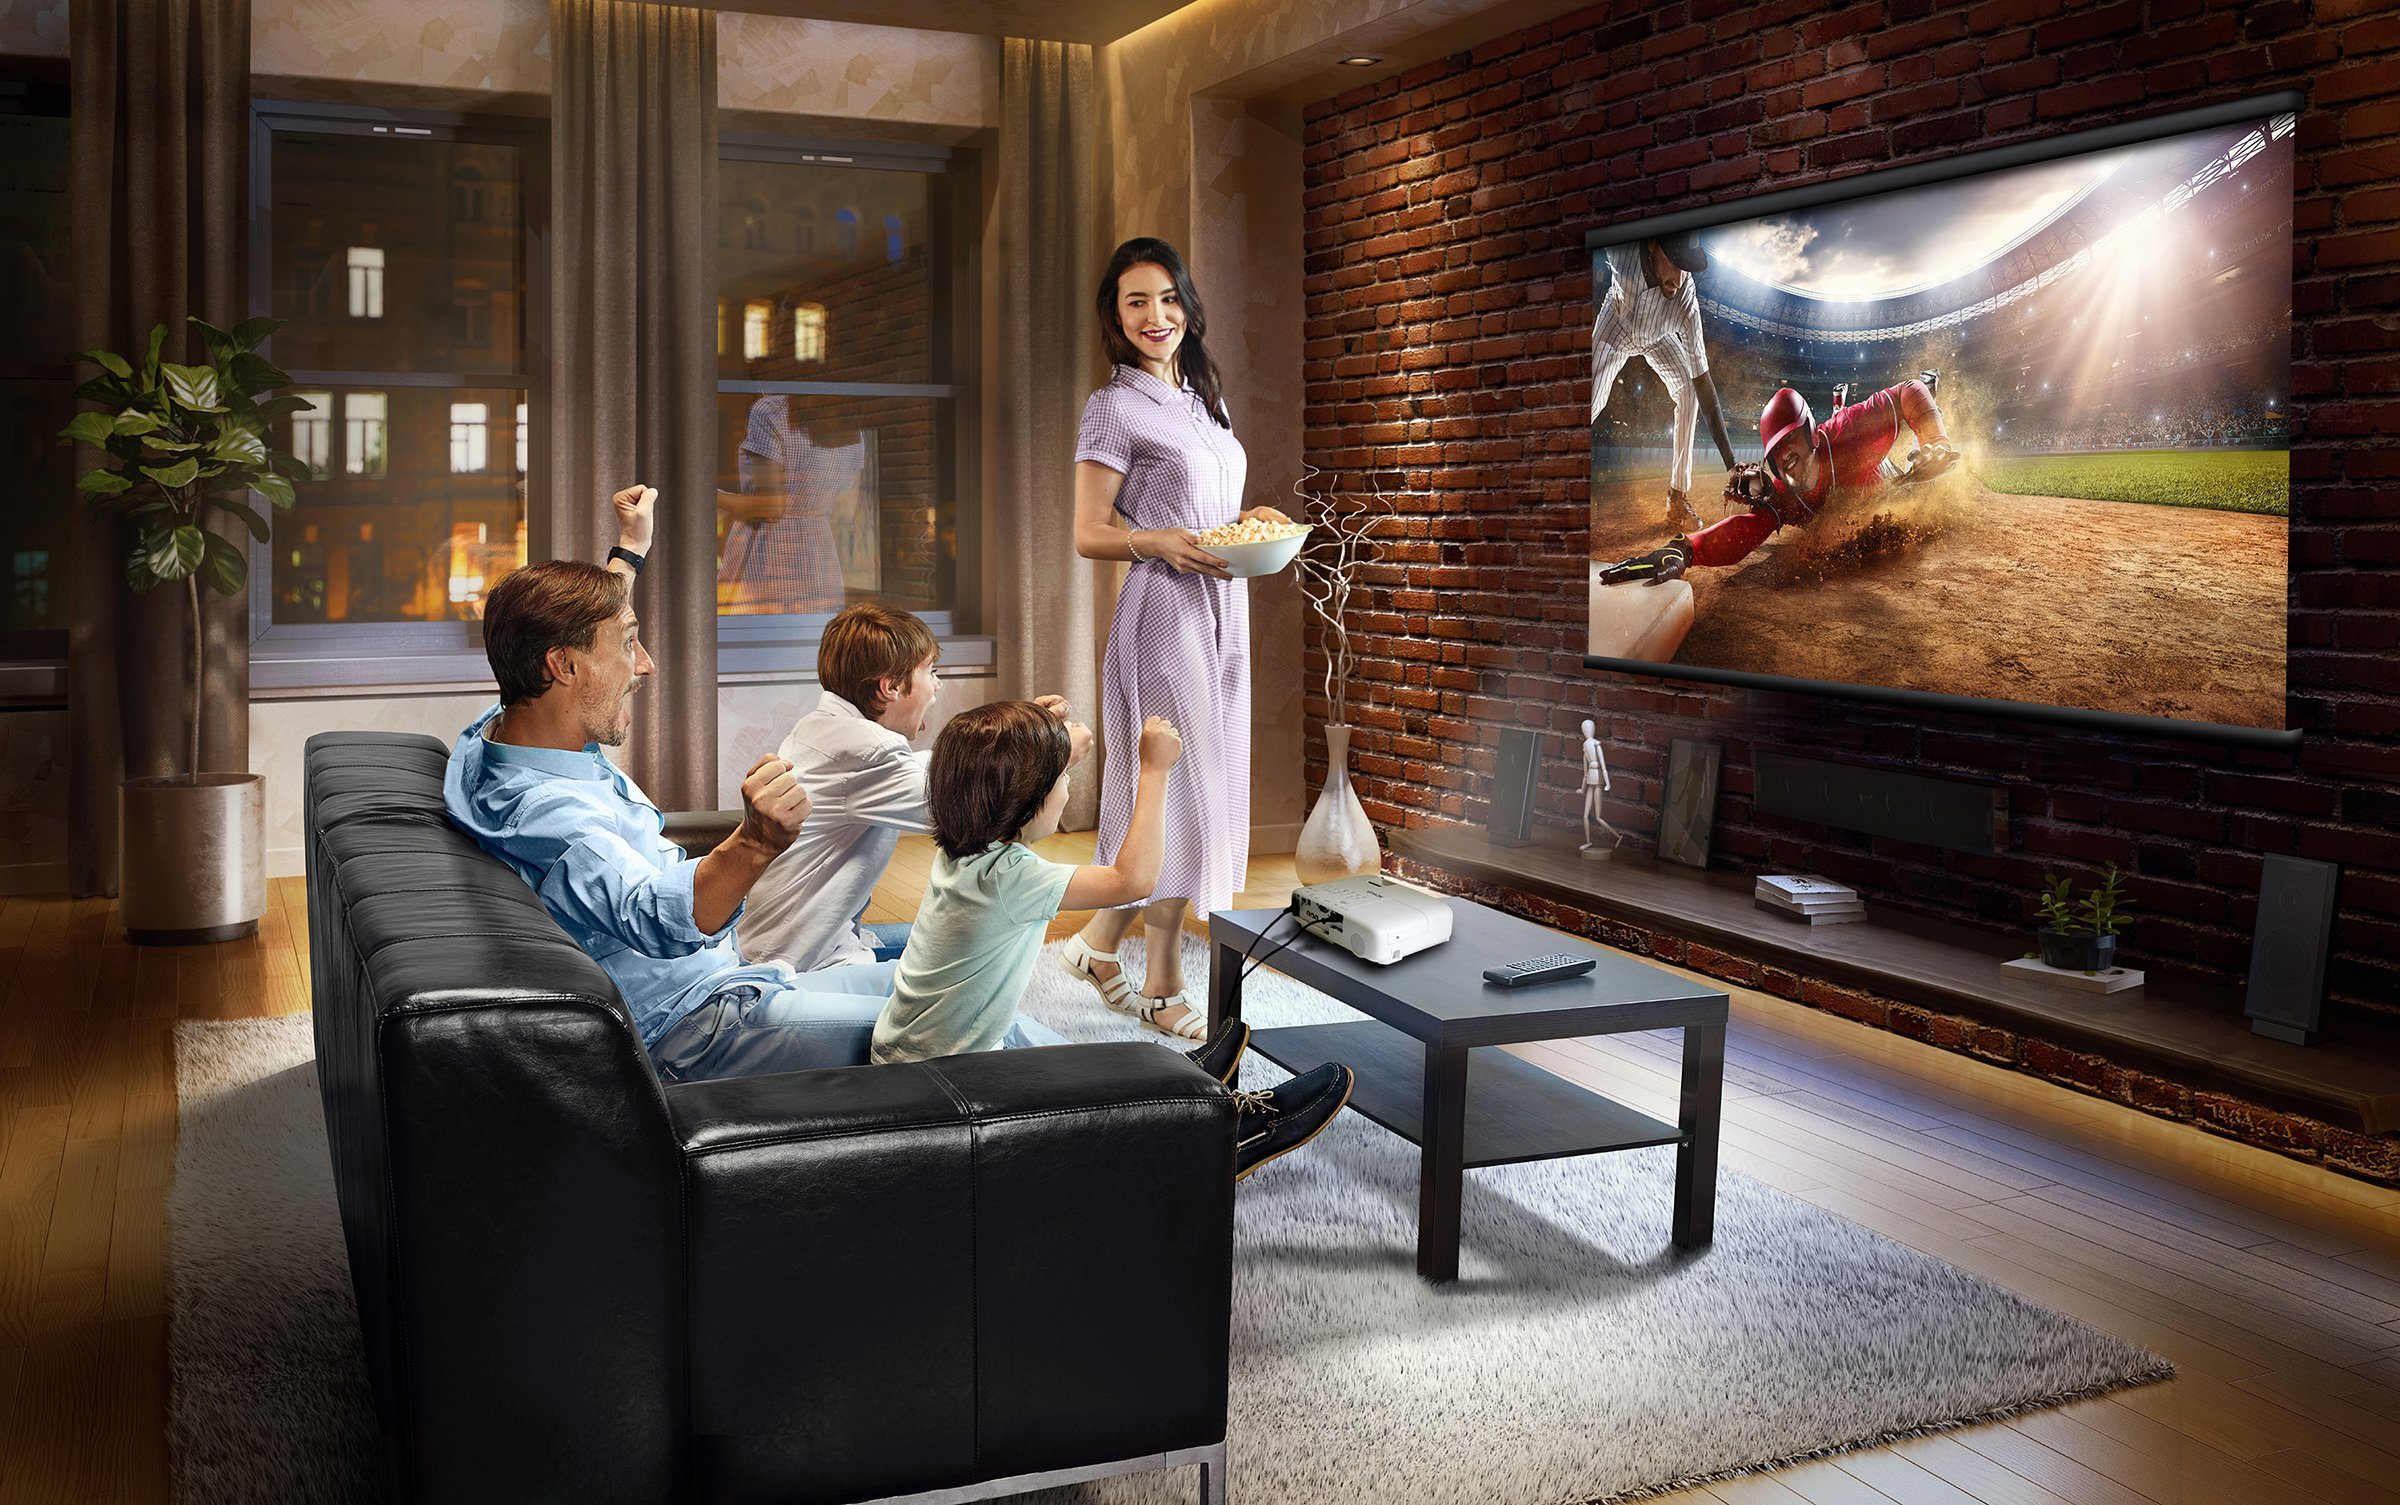 Epson Home Cinema 1060 Full HD 1080p 3,100 lumens color brightness (color light output) 3,100 lumens white brightness (white light output) 2x HDMI (1x MHL) built-in speakers 3LCD projector by Epson (Image #7)